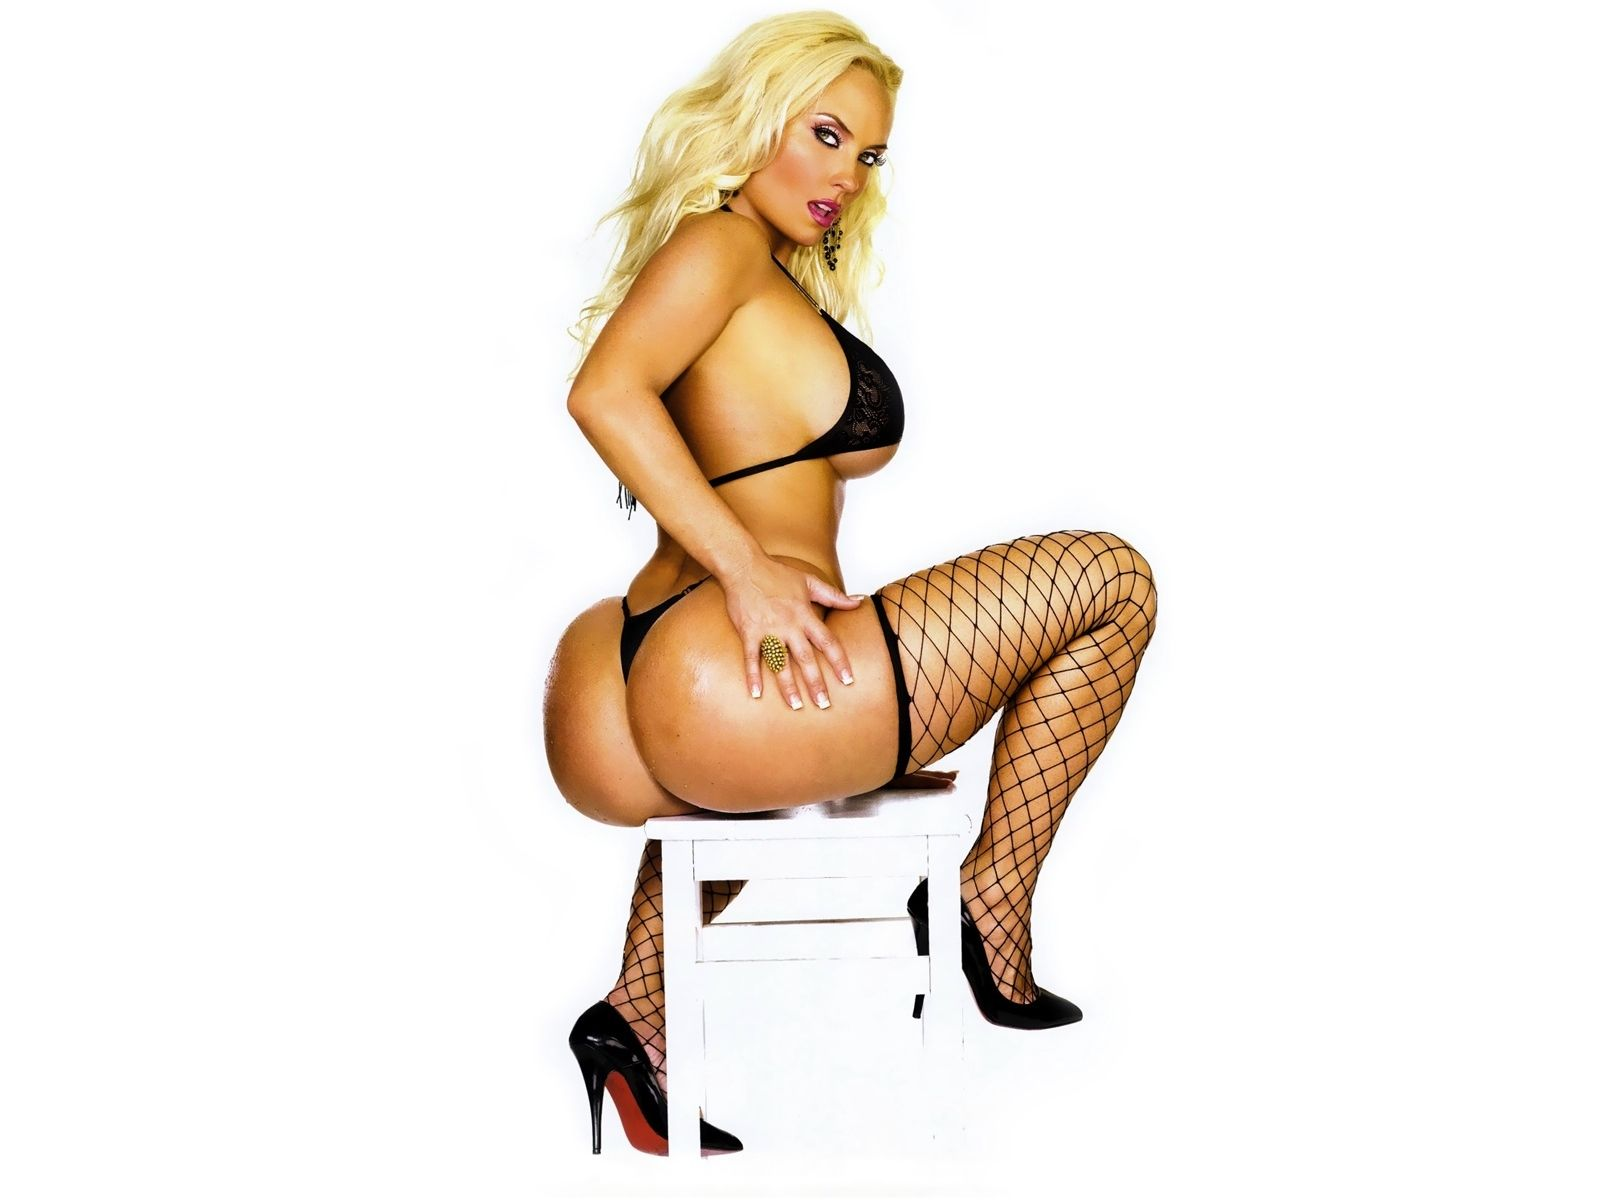 Coco austin booty in pantyhose pictures